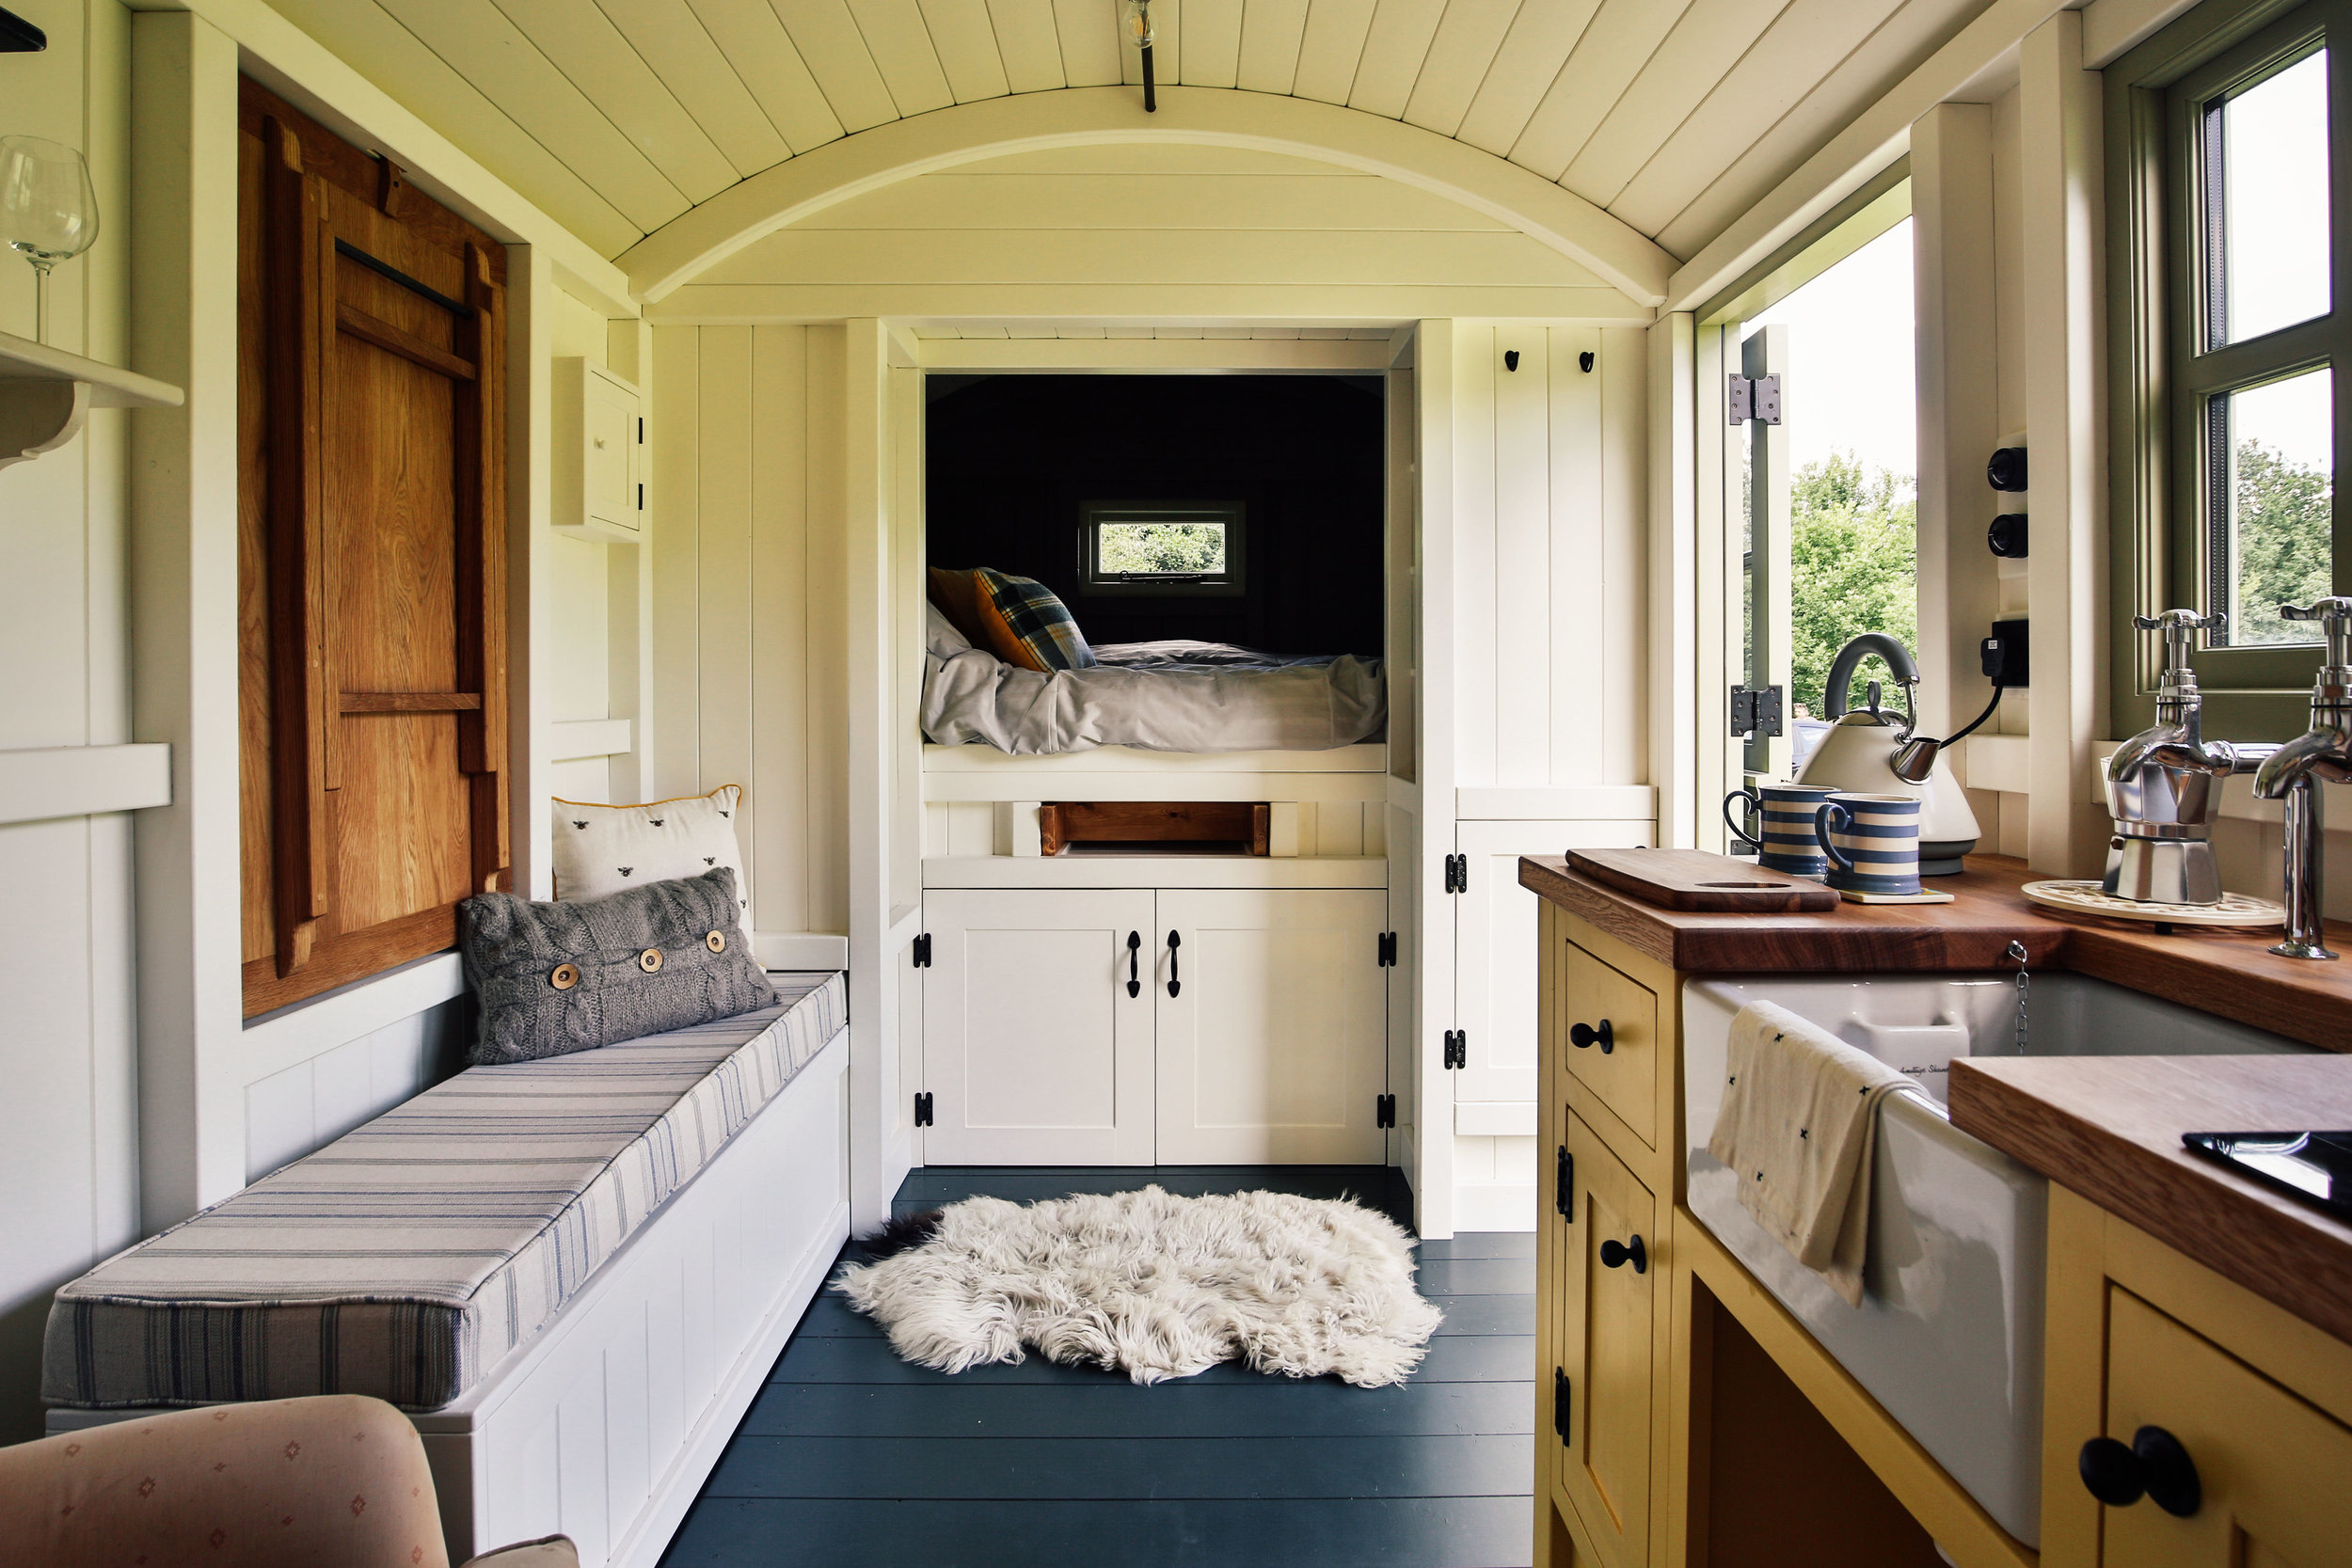 Adam bennett, director of red sky shepherds huts Oxfordshire